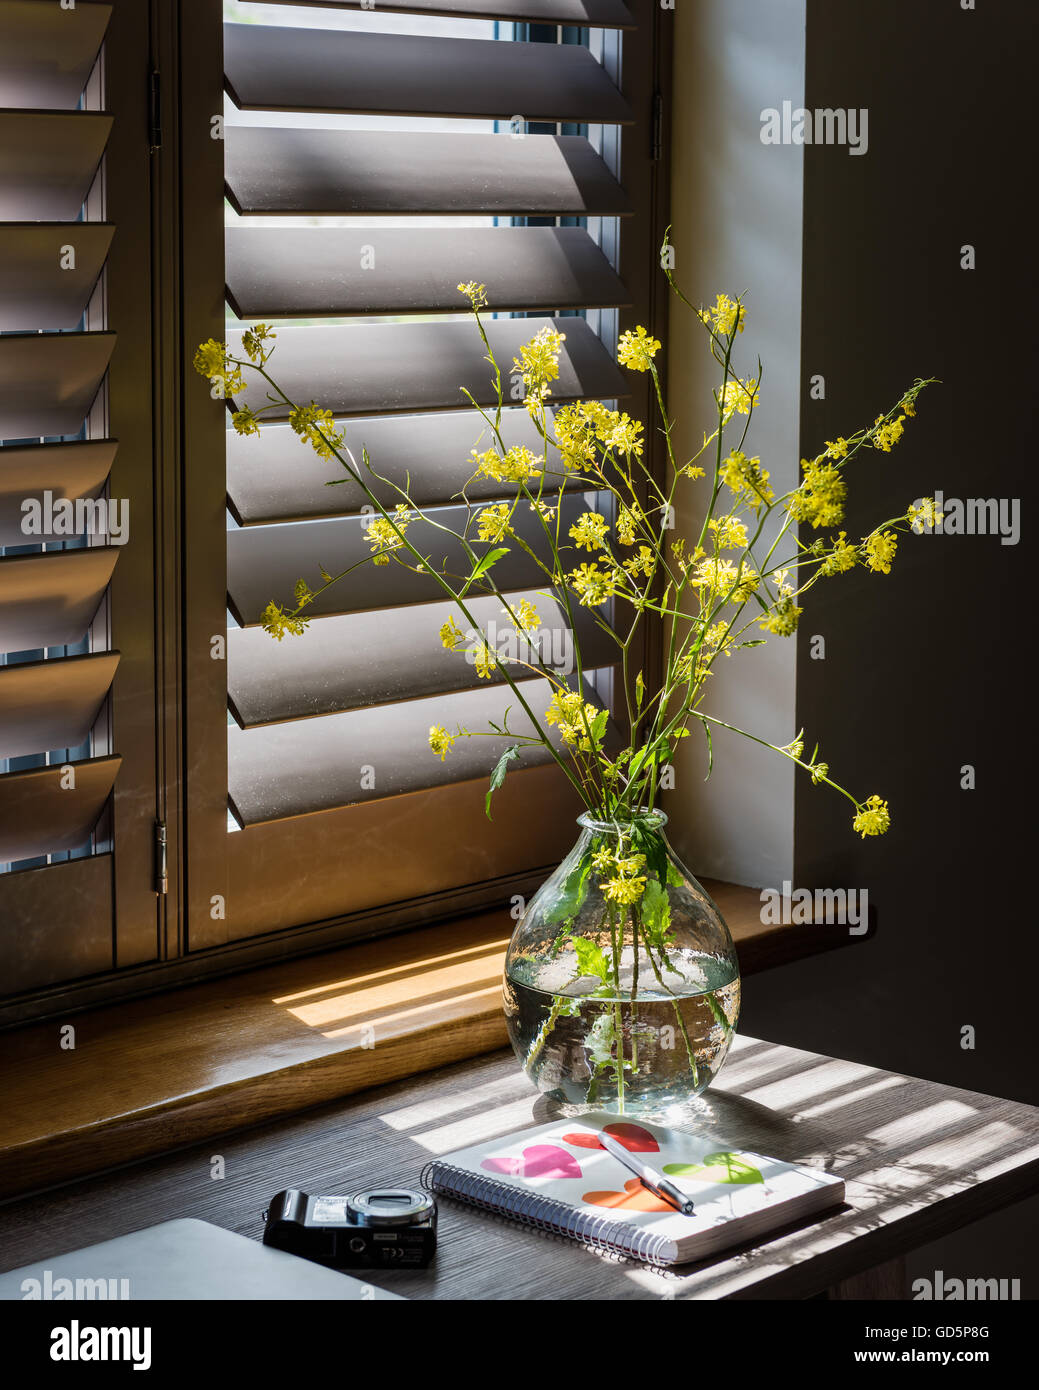 Detail of vase with sprigs of yellow flowers with plantation shutters in background - Stock Image